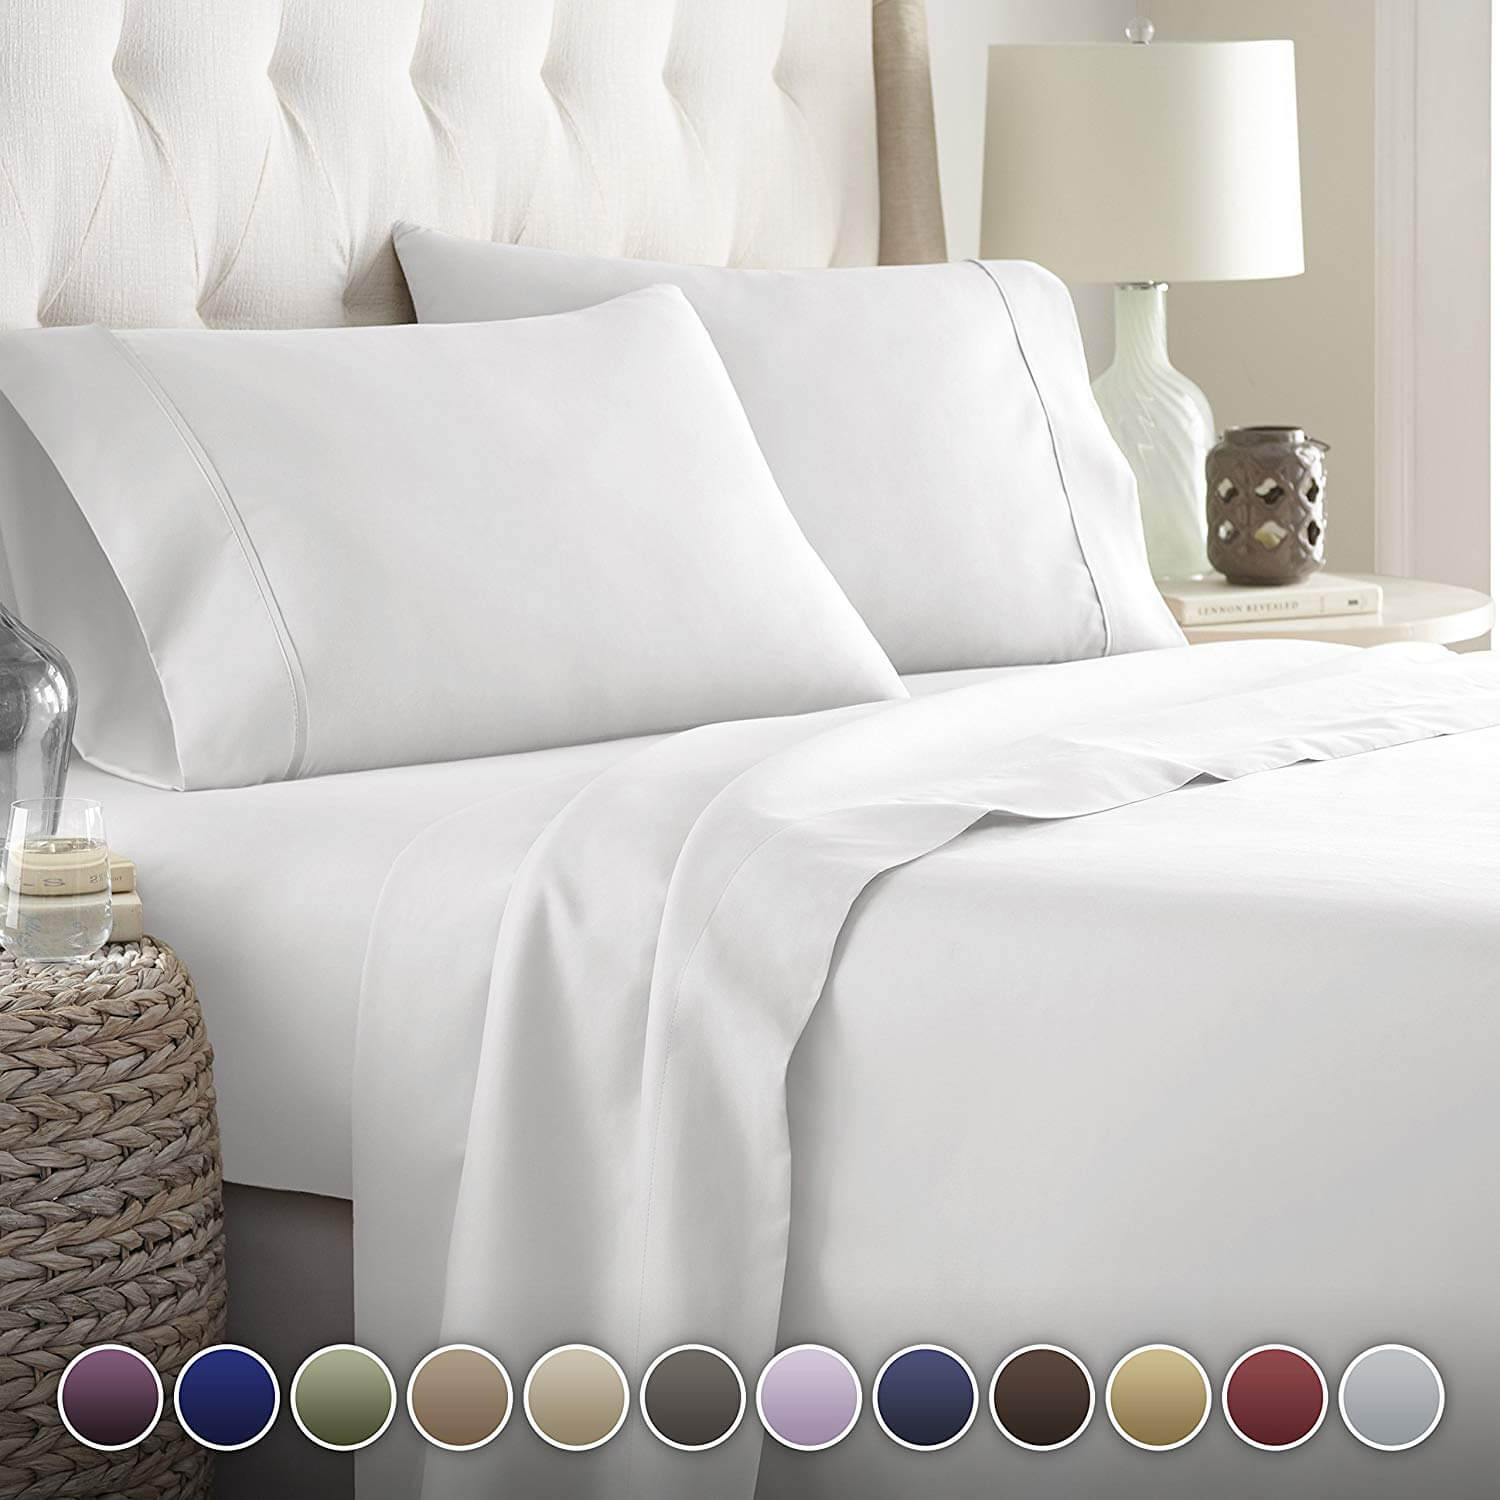 10. Hotel Luxury Bed Sheets Set- 1800 Series